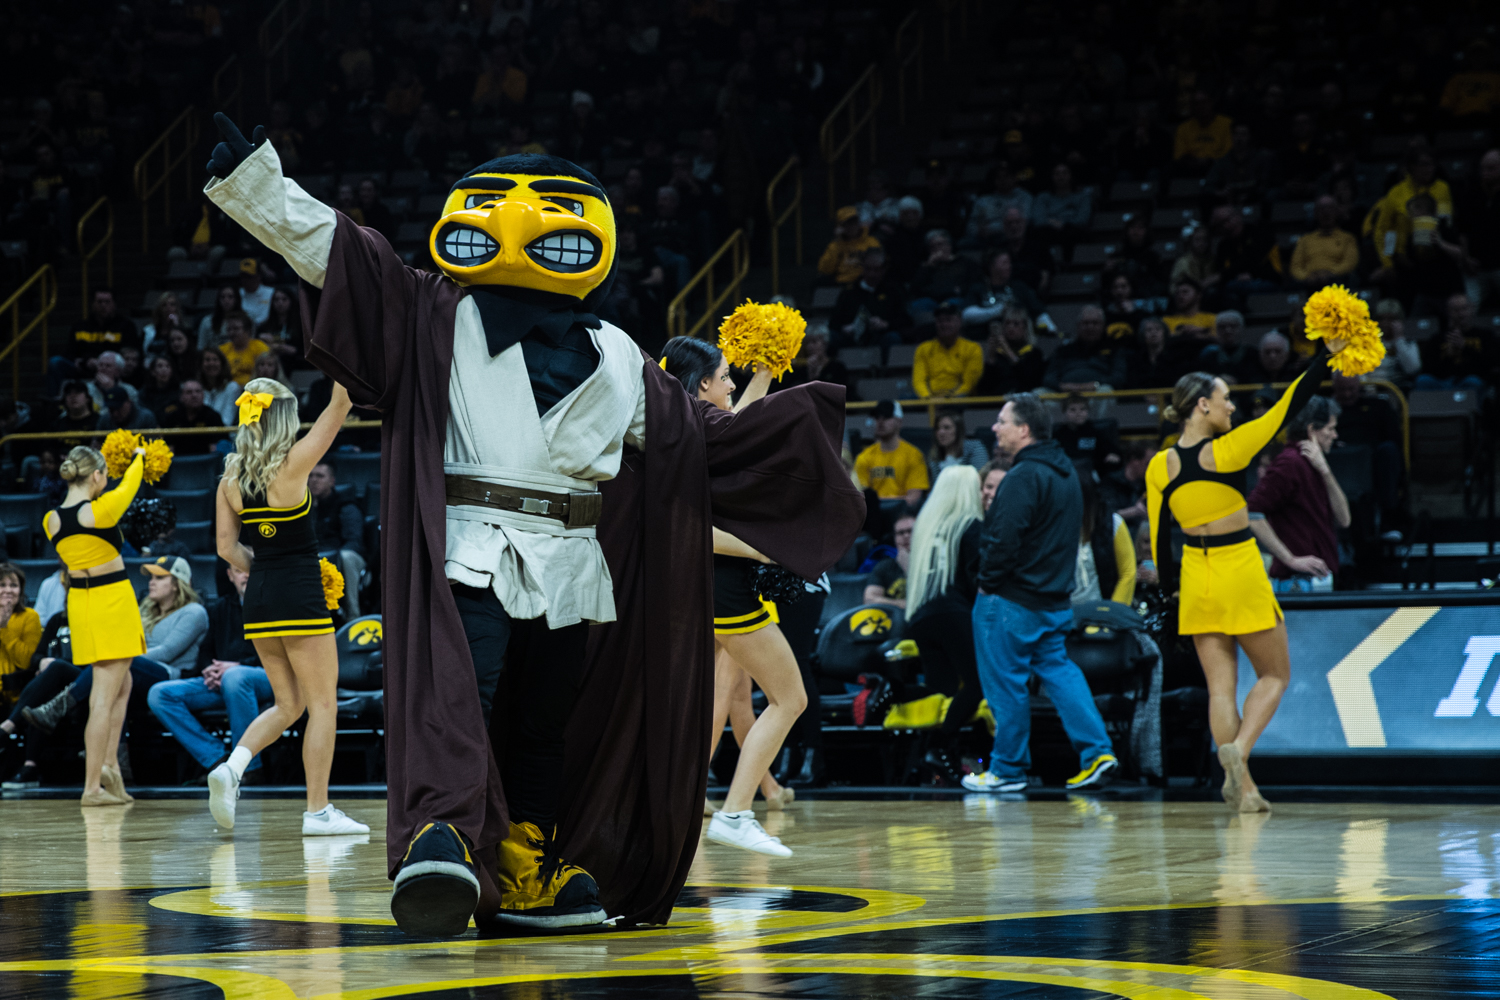 Herky+is+introduced+during+a+men%27s+basketball+matchup+between+Ohio+State+and+Iowa+at+Carver-Hawkeye+Arena+on+Saturday%2C+January+12%2C+2019.+The+Hawkeyes+defeated+the+Buckeyes%2C+72-62.